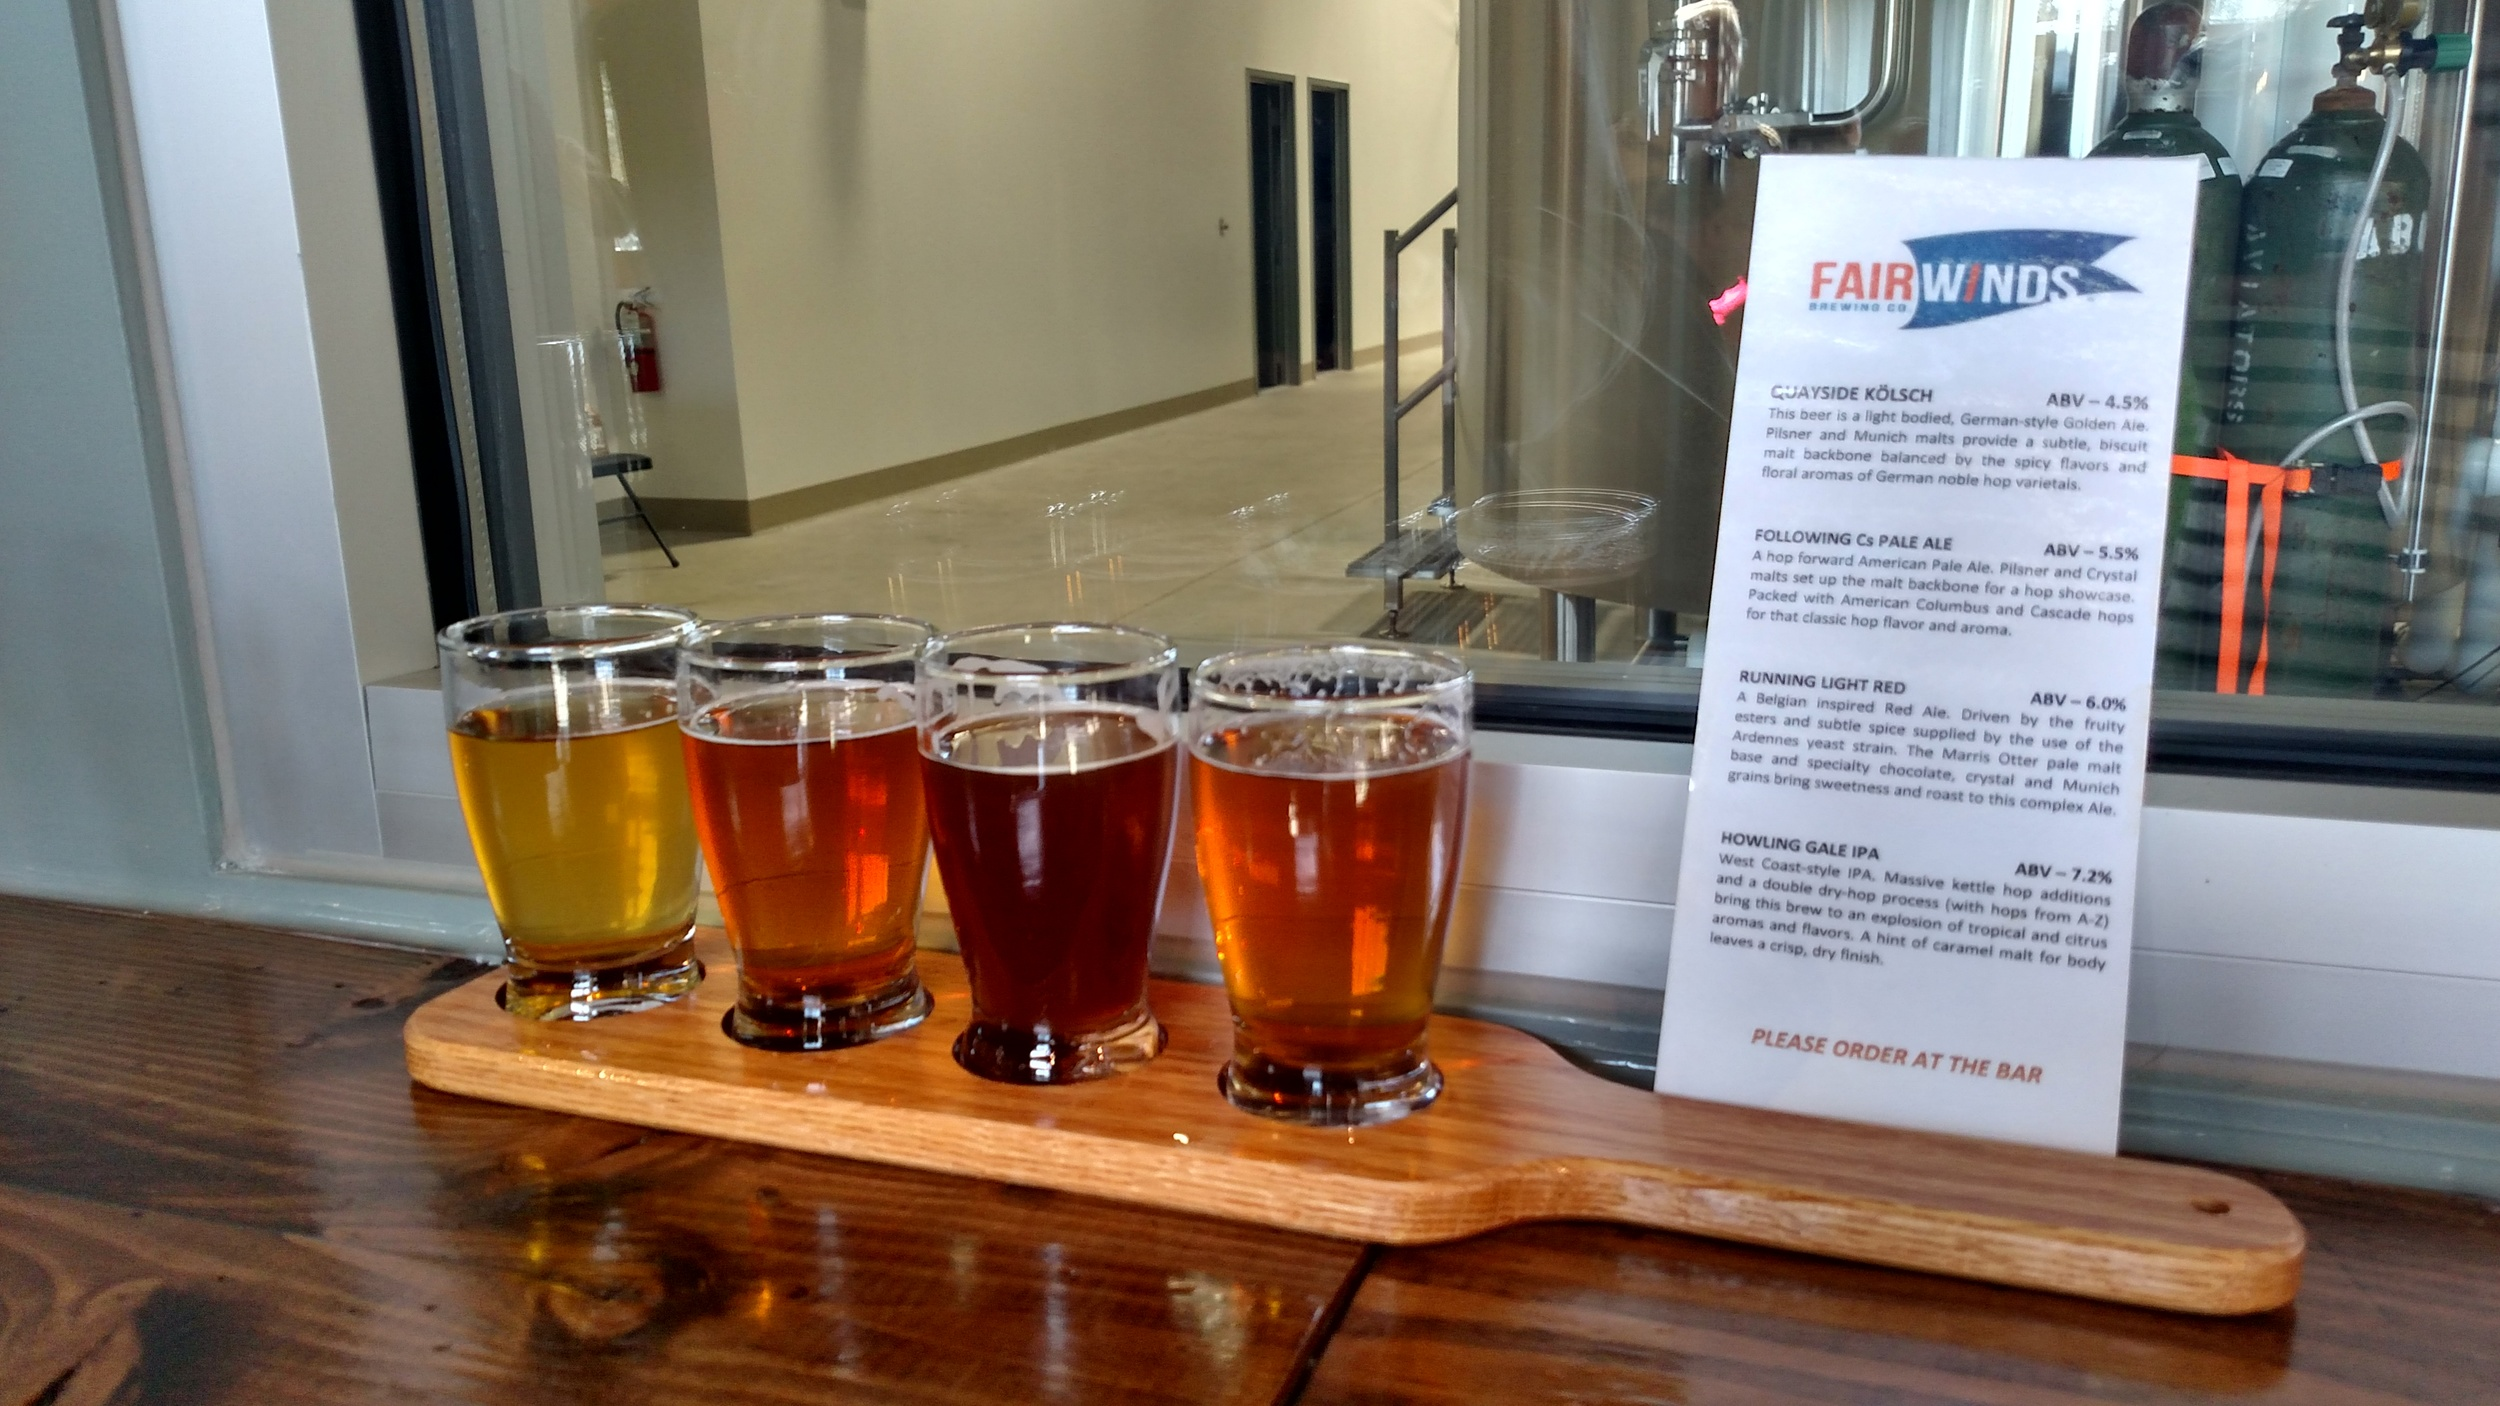 Here's the line up! Quayside Kolsch, Following Cs Pale Ale, Running Light Red and Howling Gale IPA.